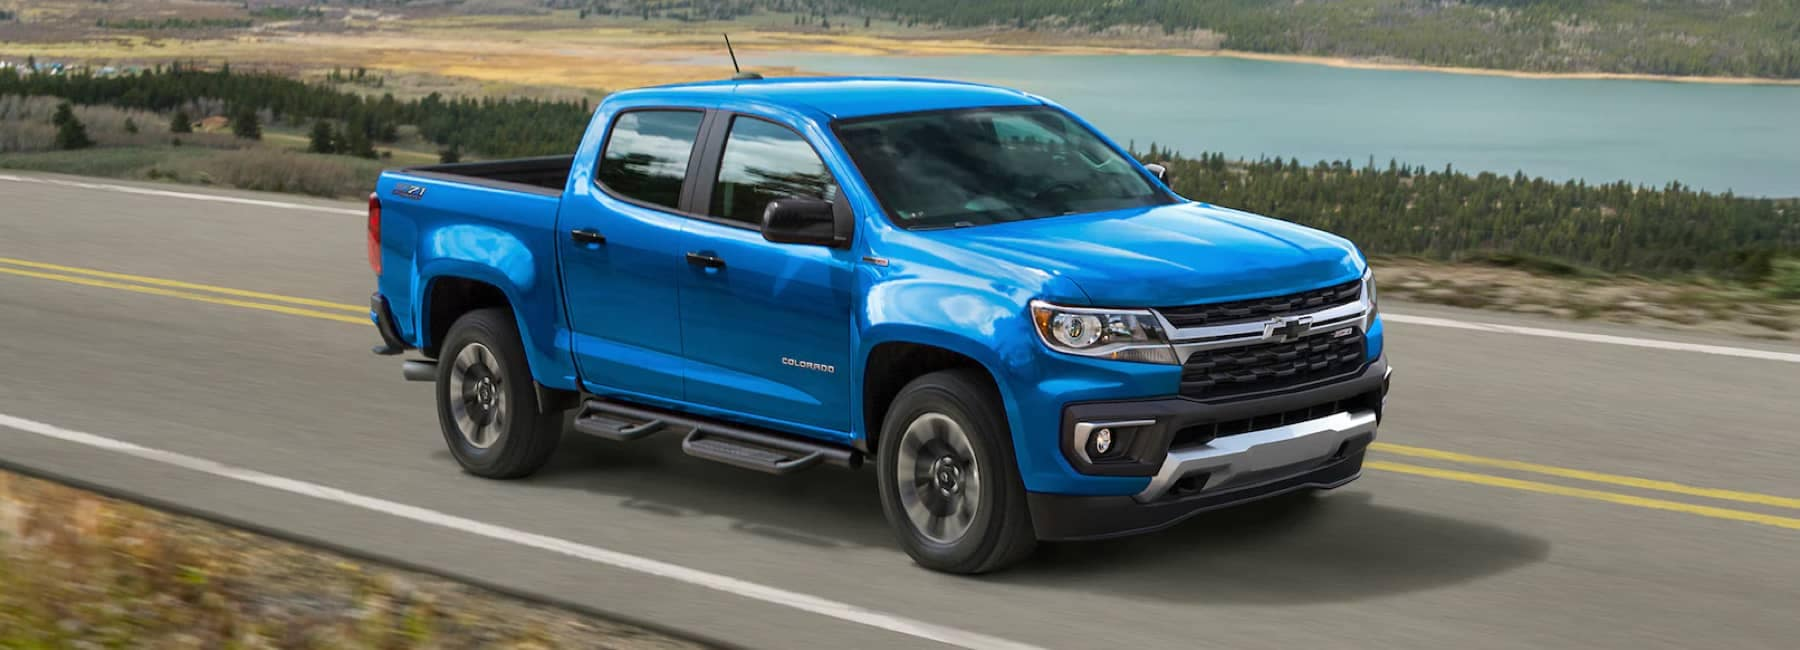 2021 Blue Metallic Chevrolet Colordo Z71 driving on open road